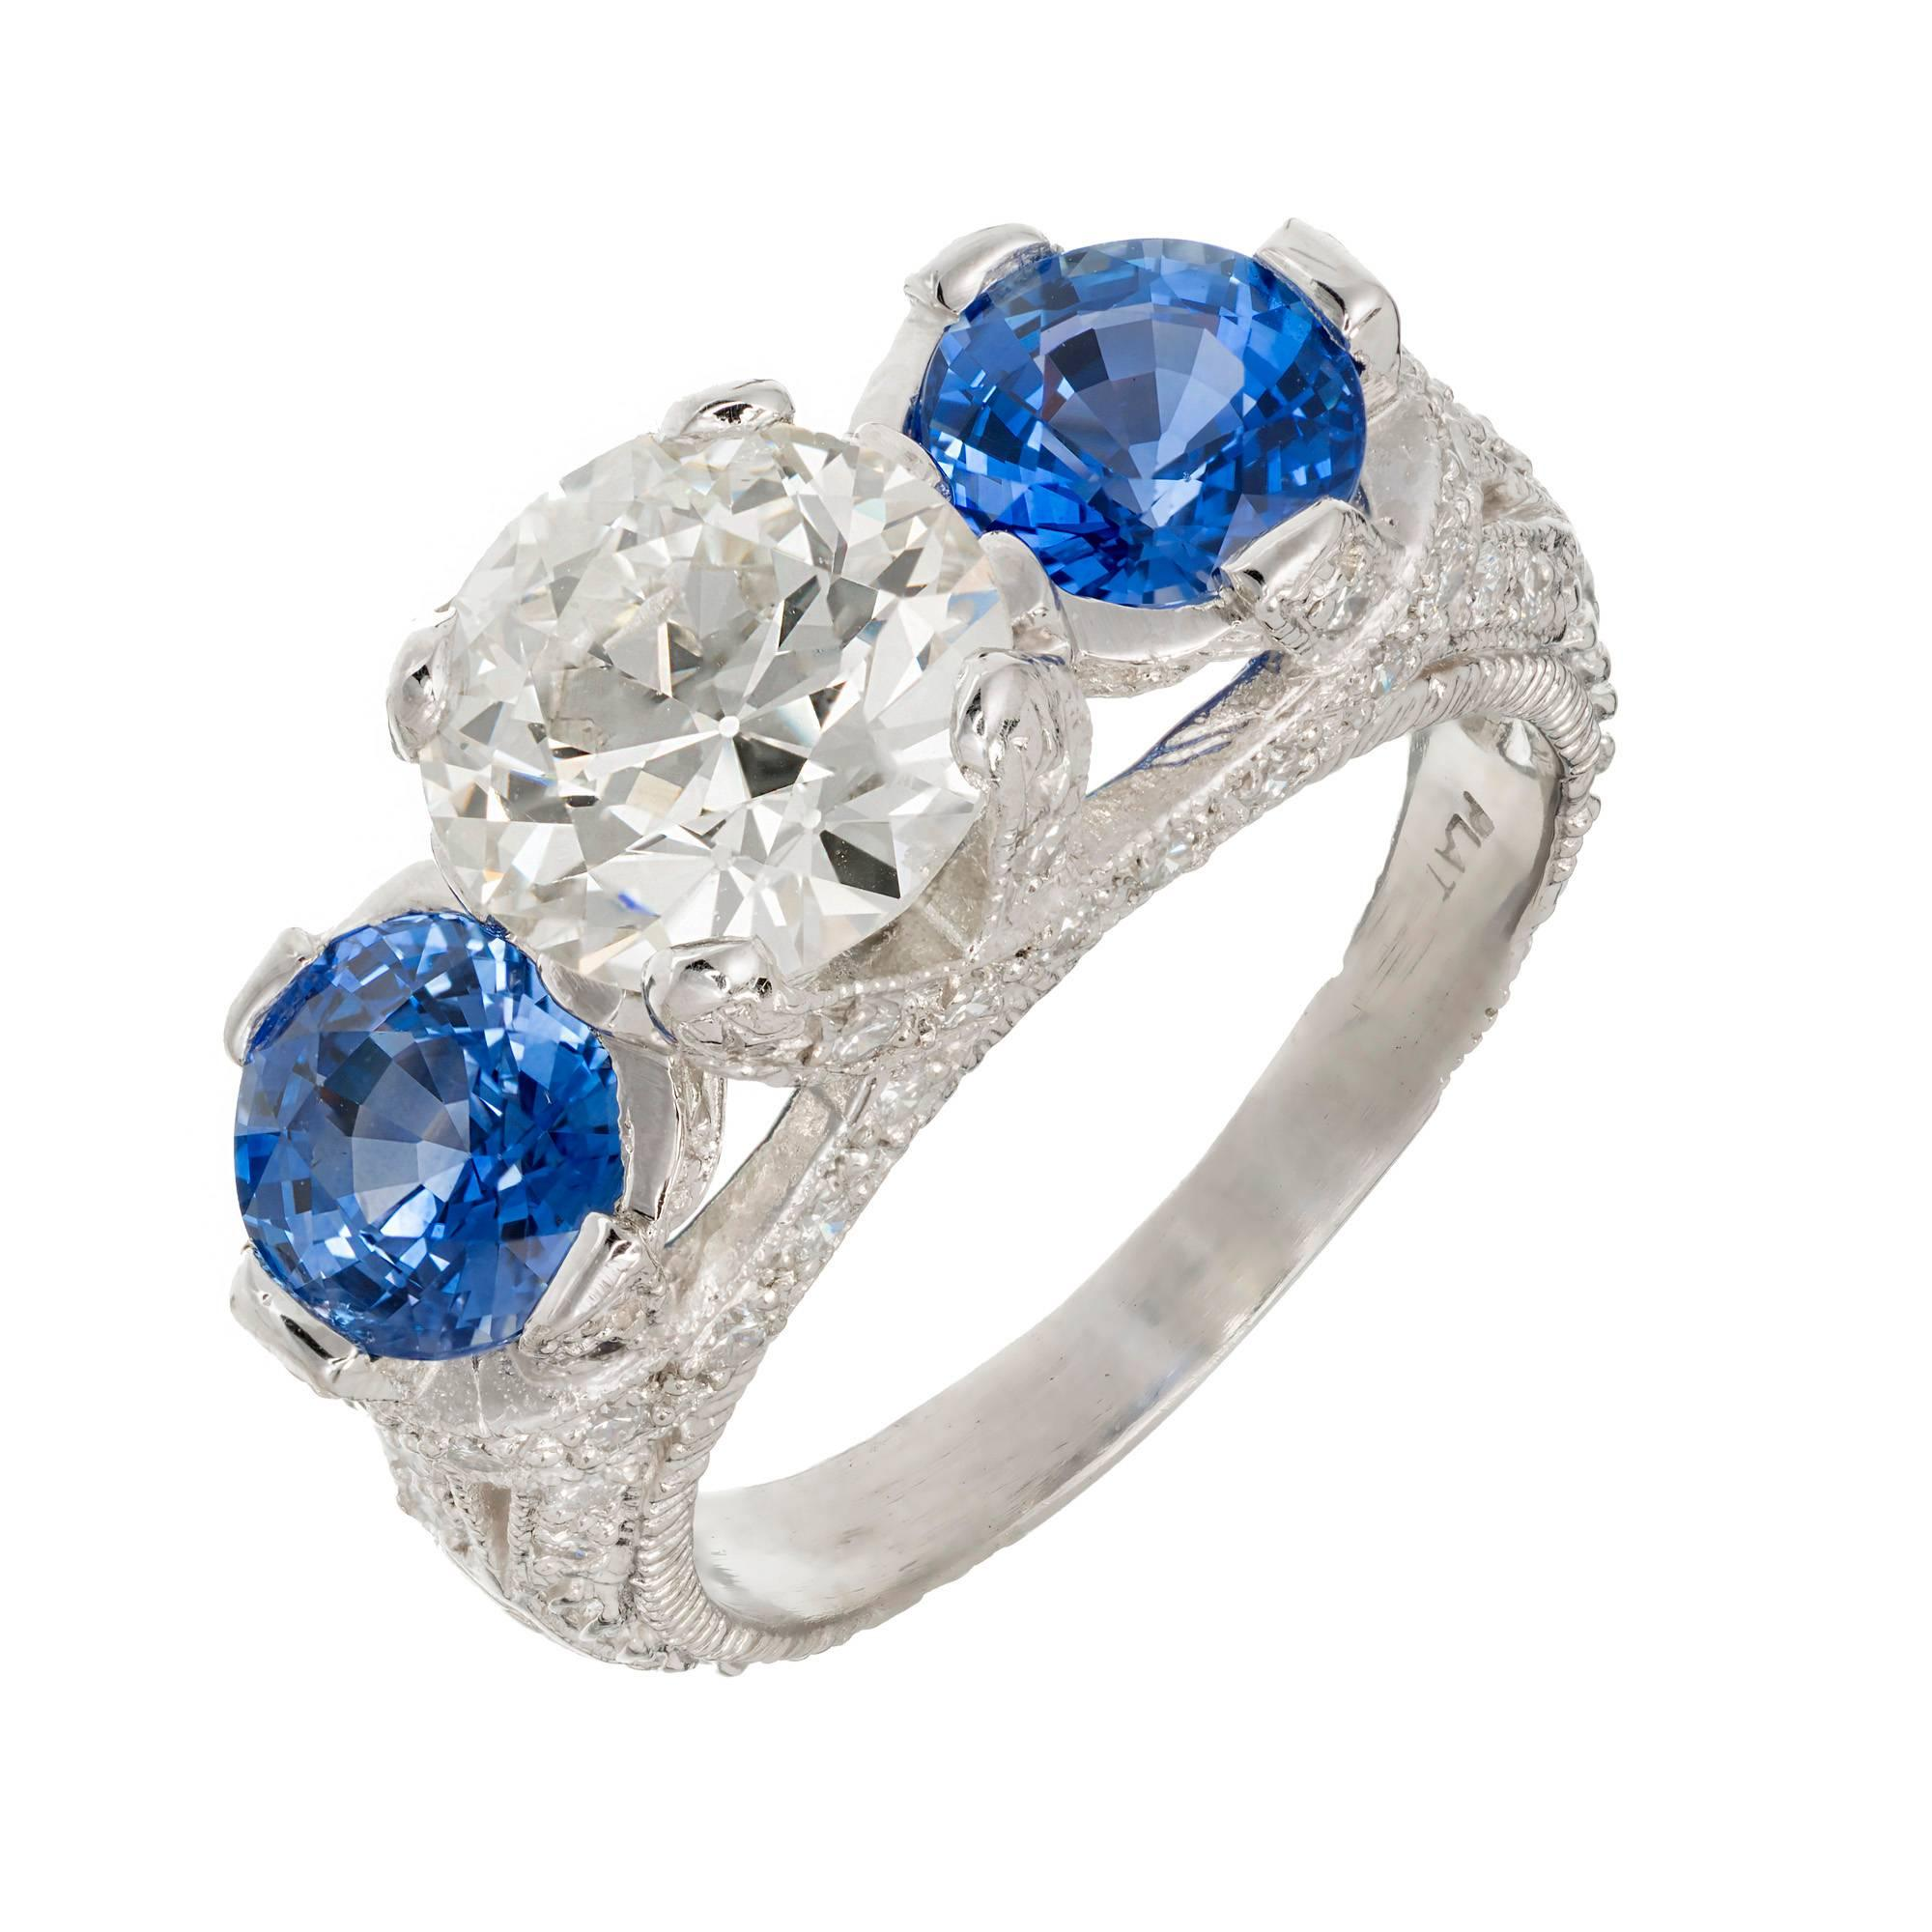 sapphire gemstone meaning blog wedding rings colored ritani blue engagement ring and of the stone